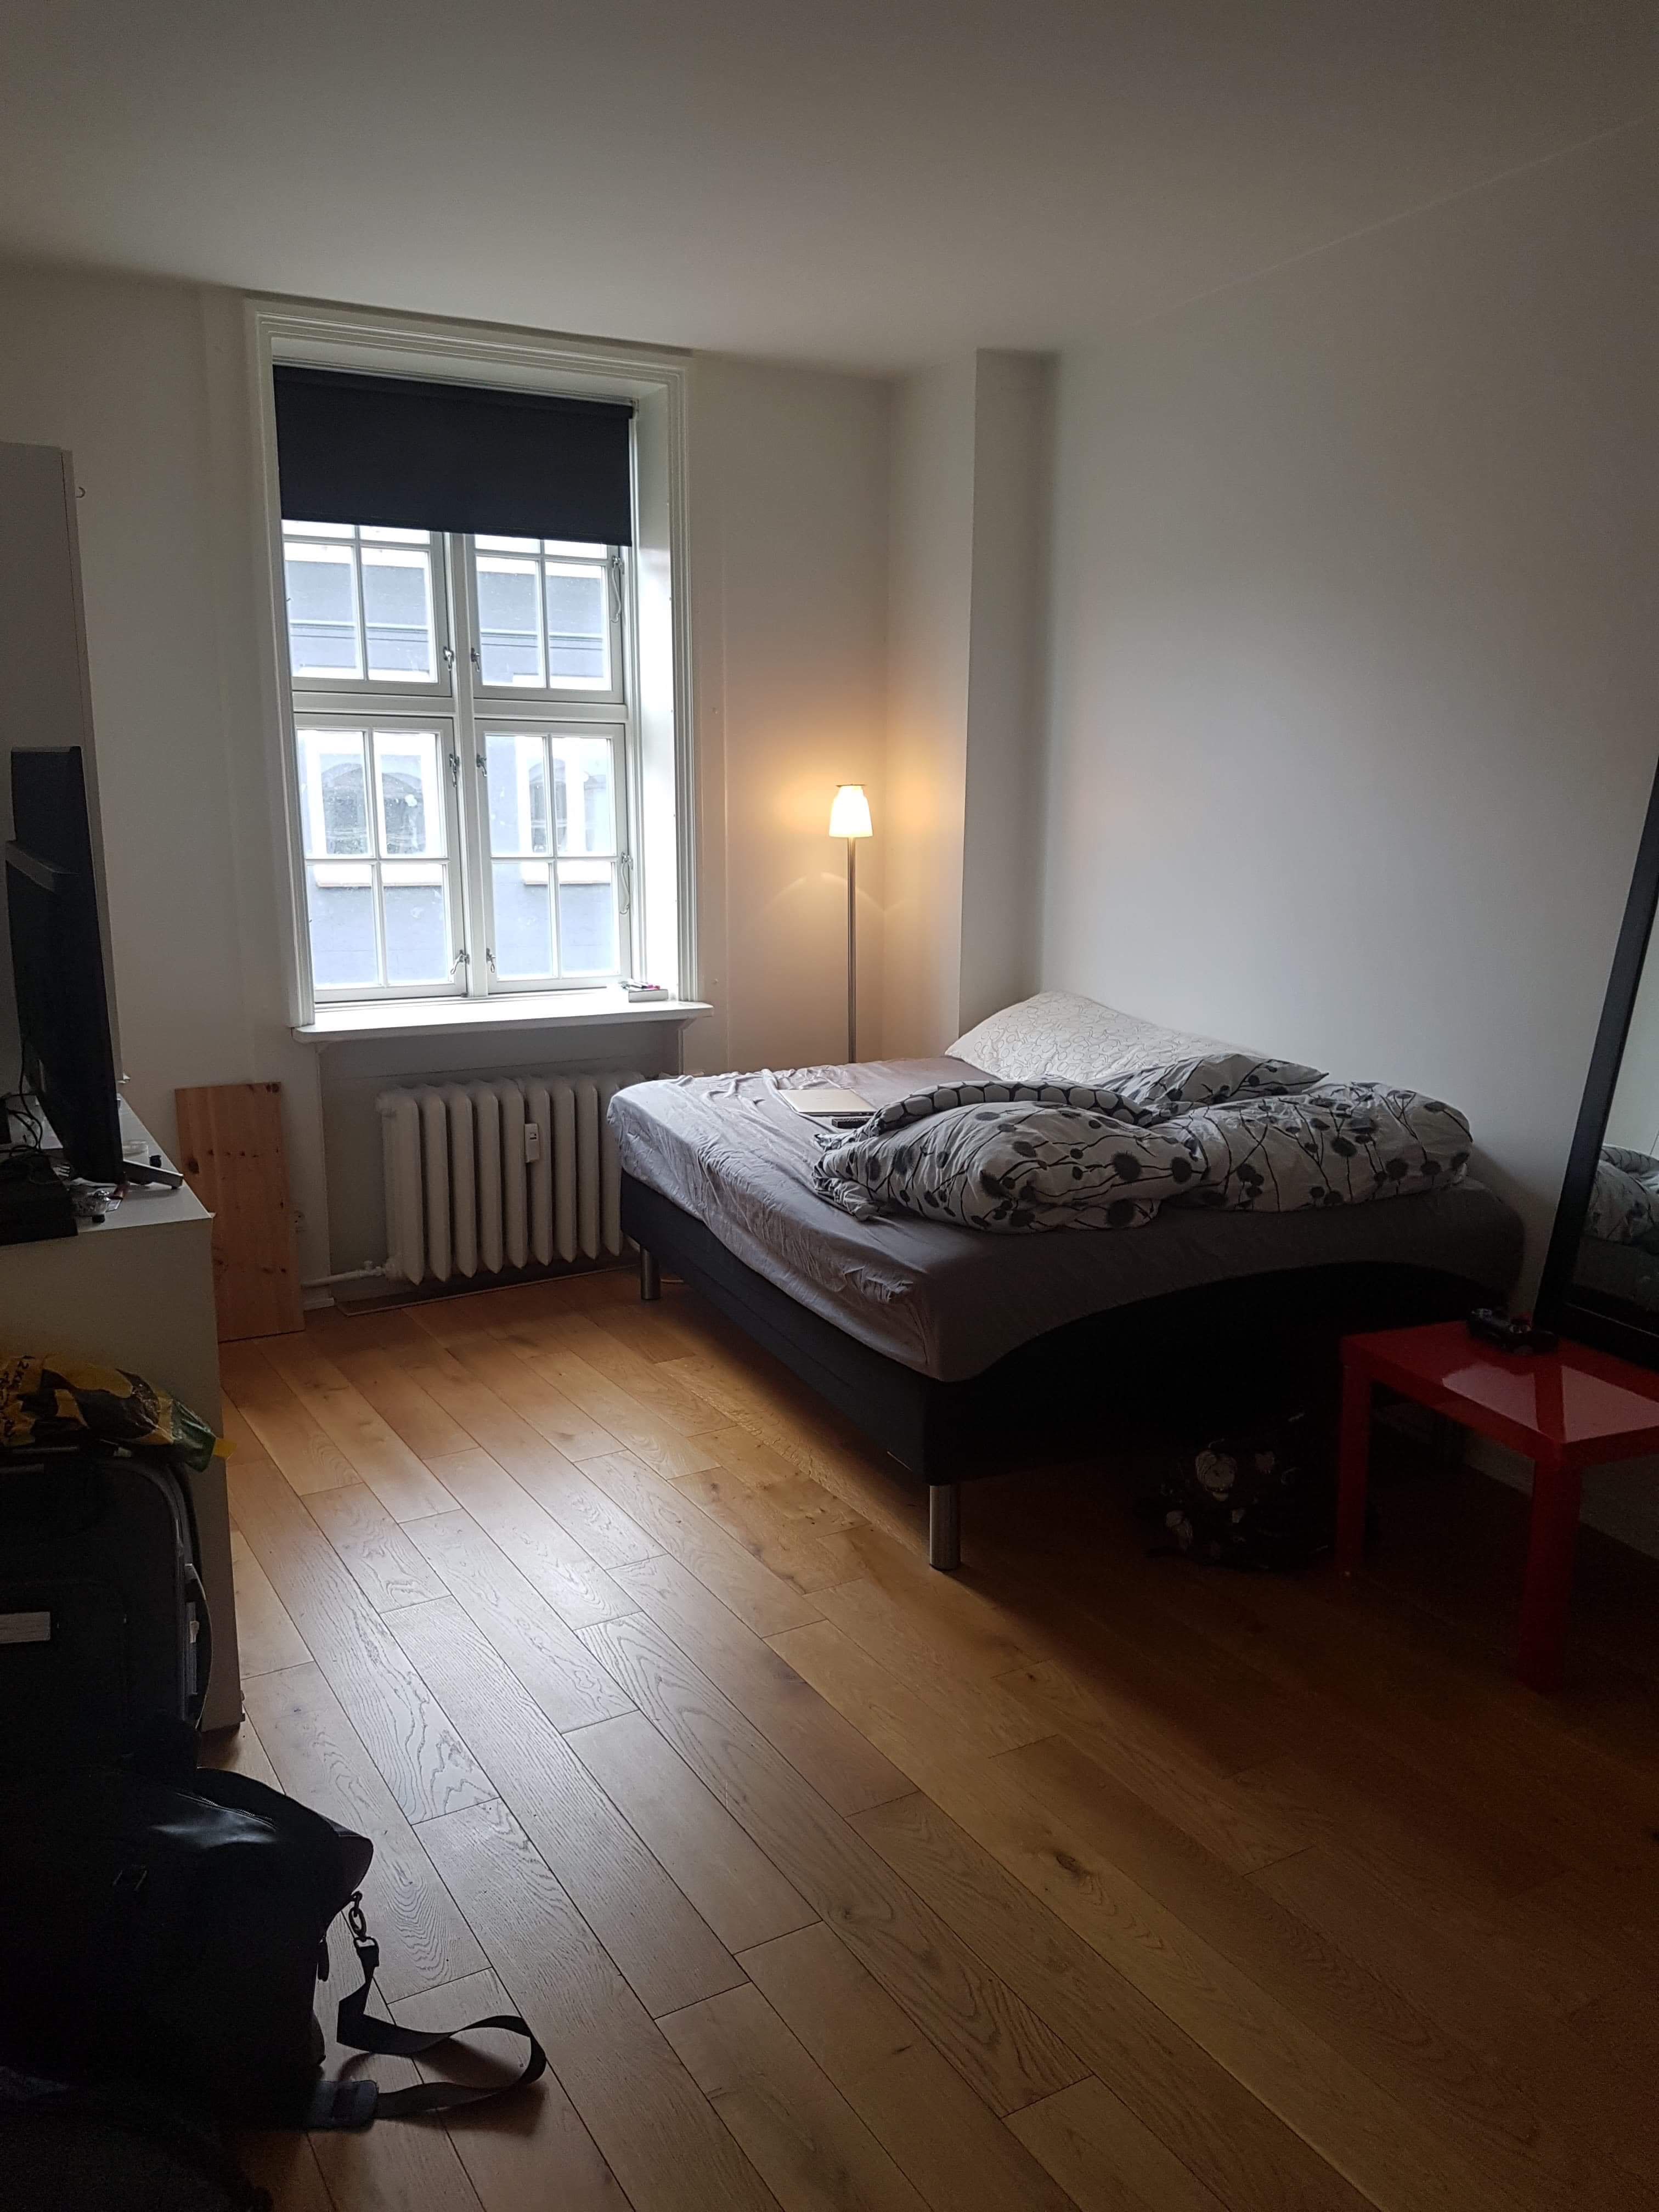 Room in Kolding center for rent for 3 months